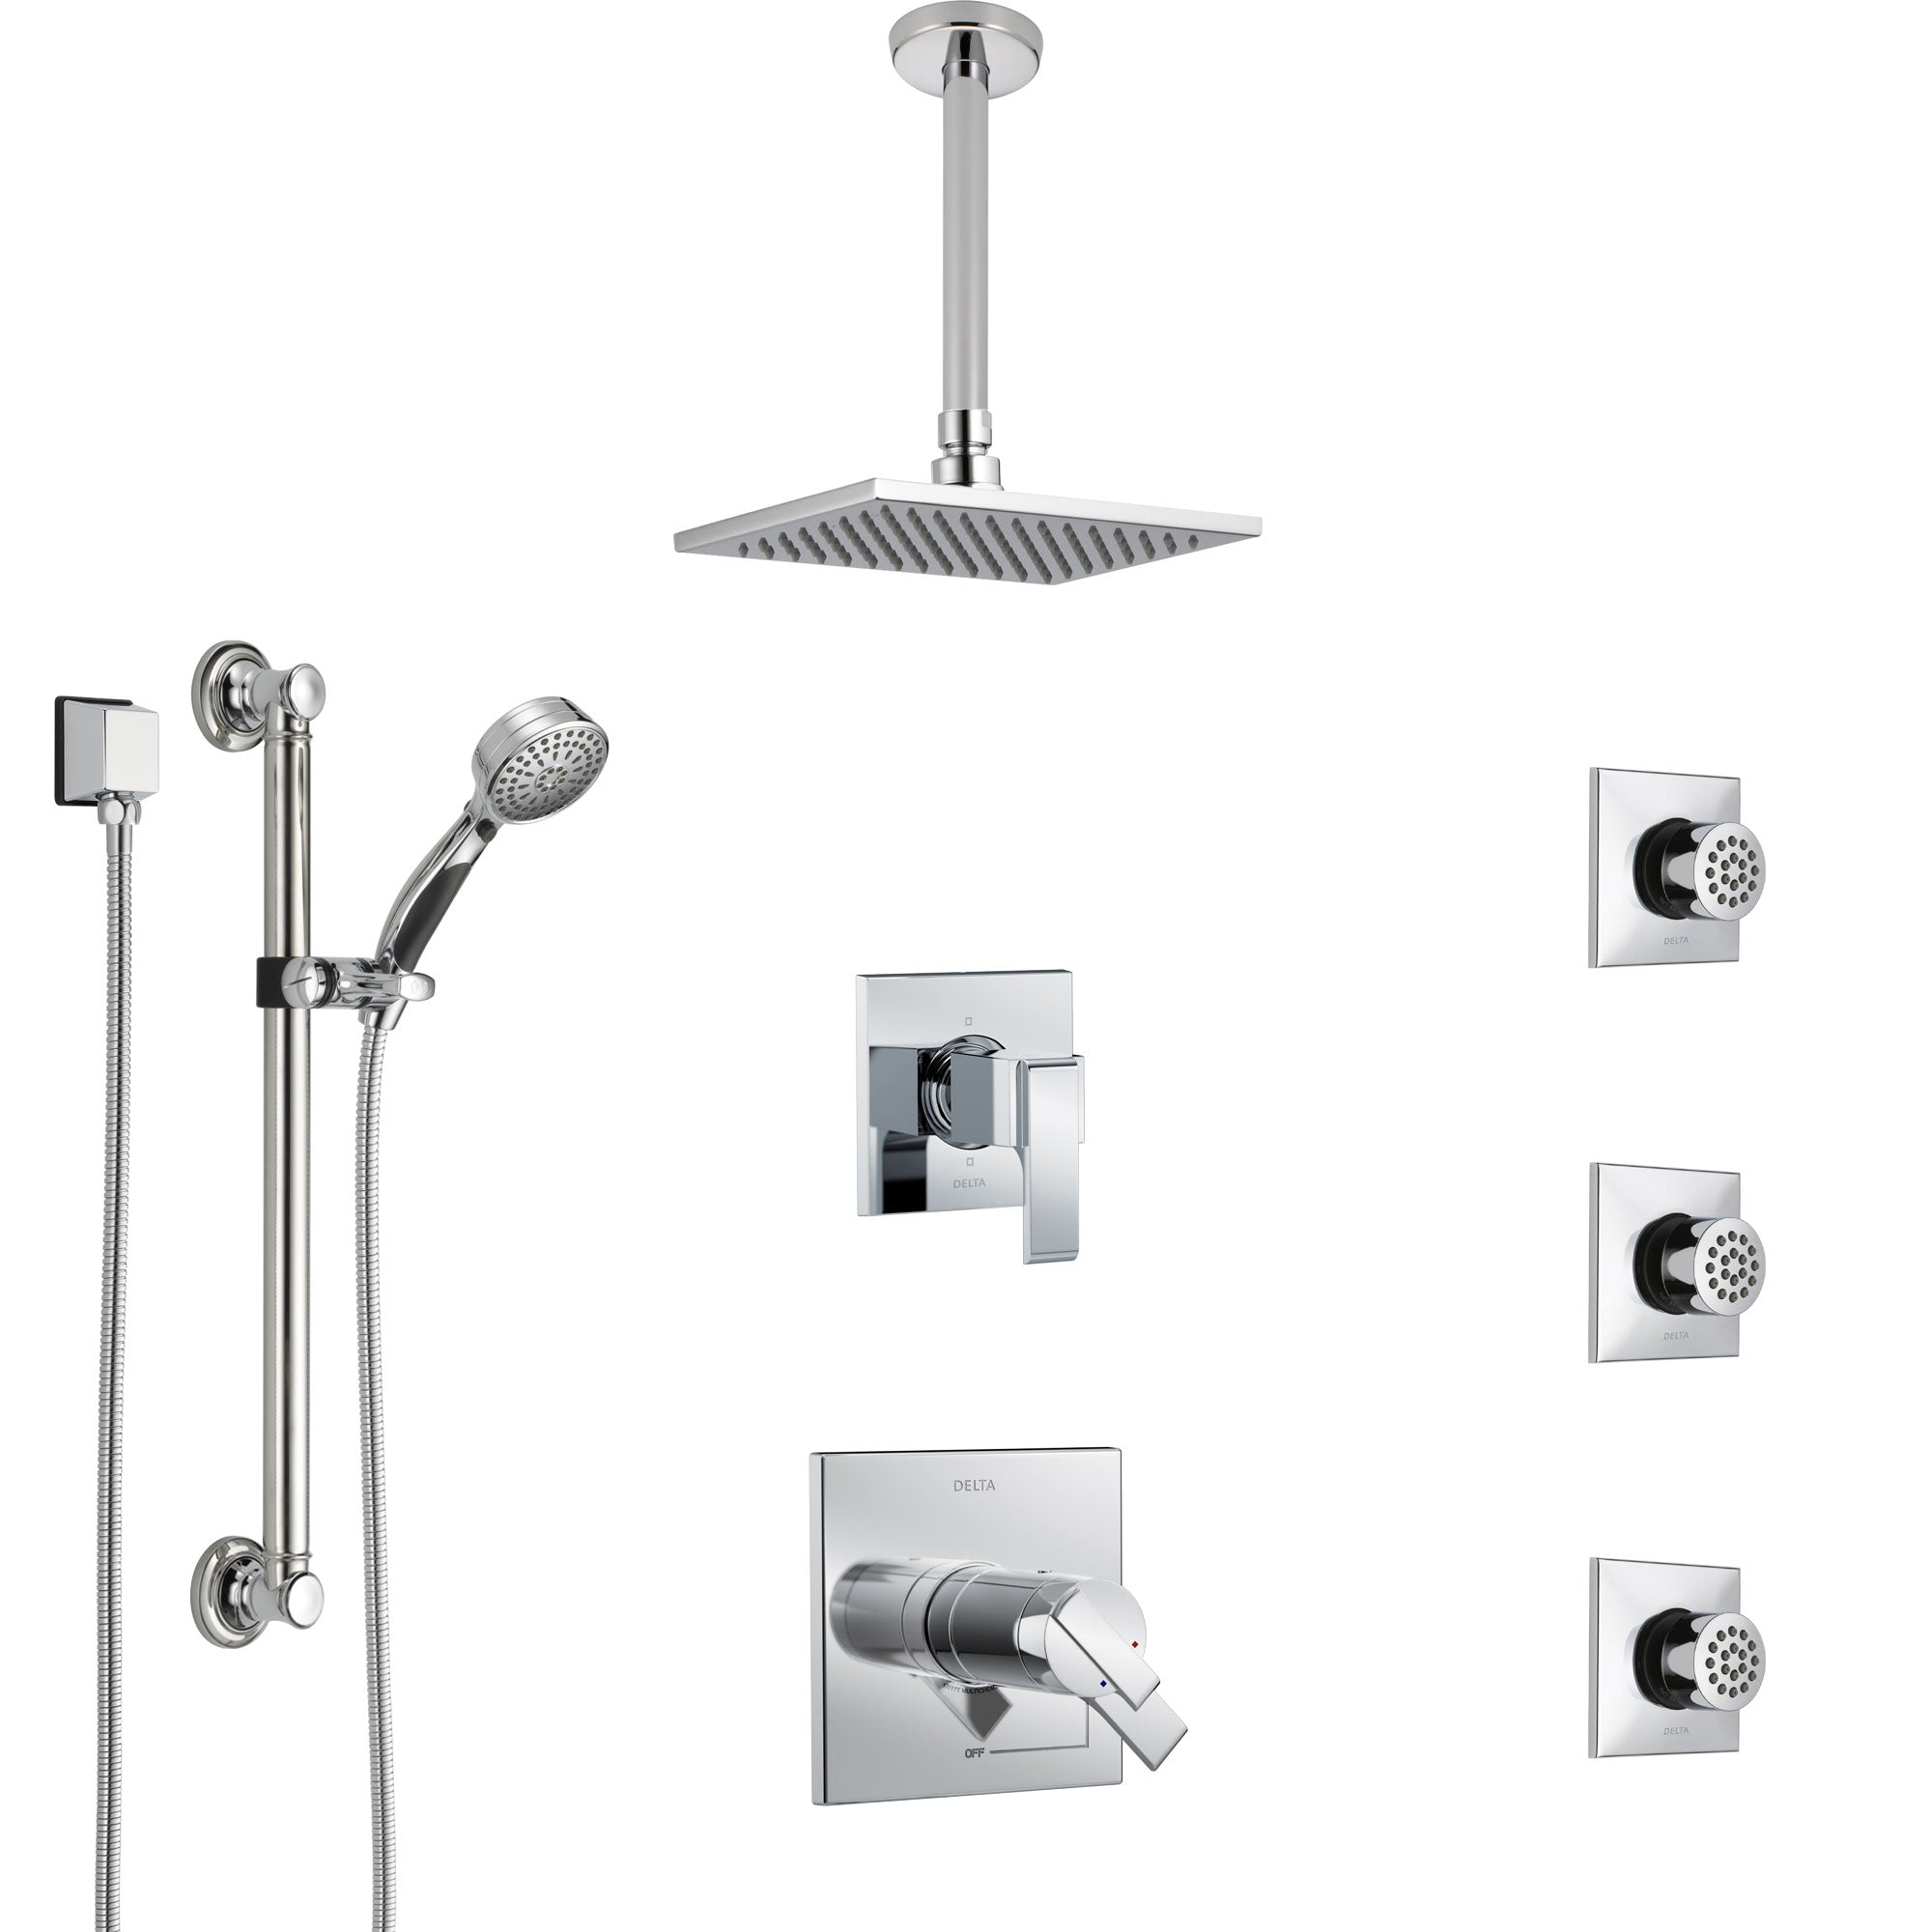 Delta Ara Chrome Shower System with Dual Thermostatic Control, Diverter, Ceiling Mount Showerhead, 3 Body Sprays, and Grab Bar Hand Shower SS17T6721